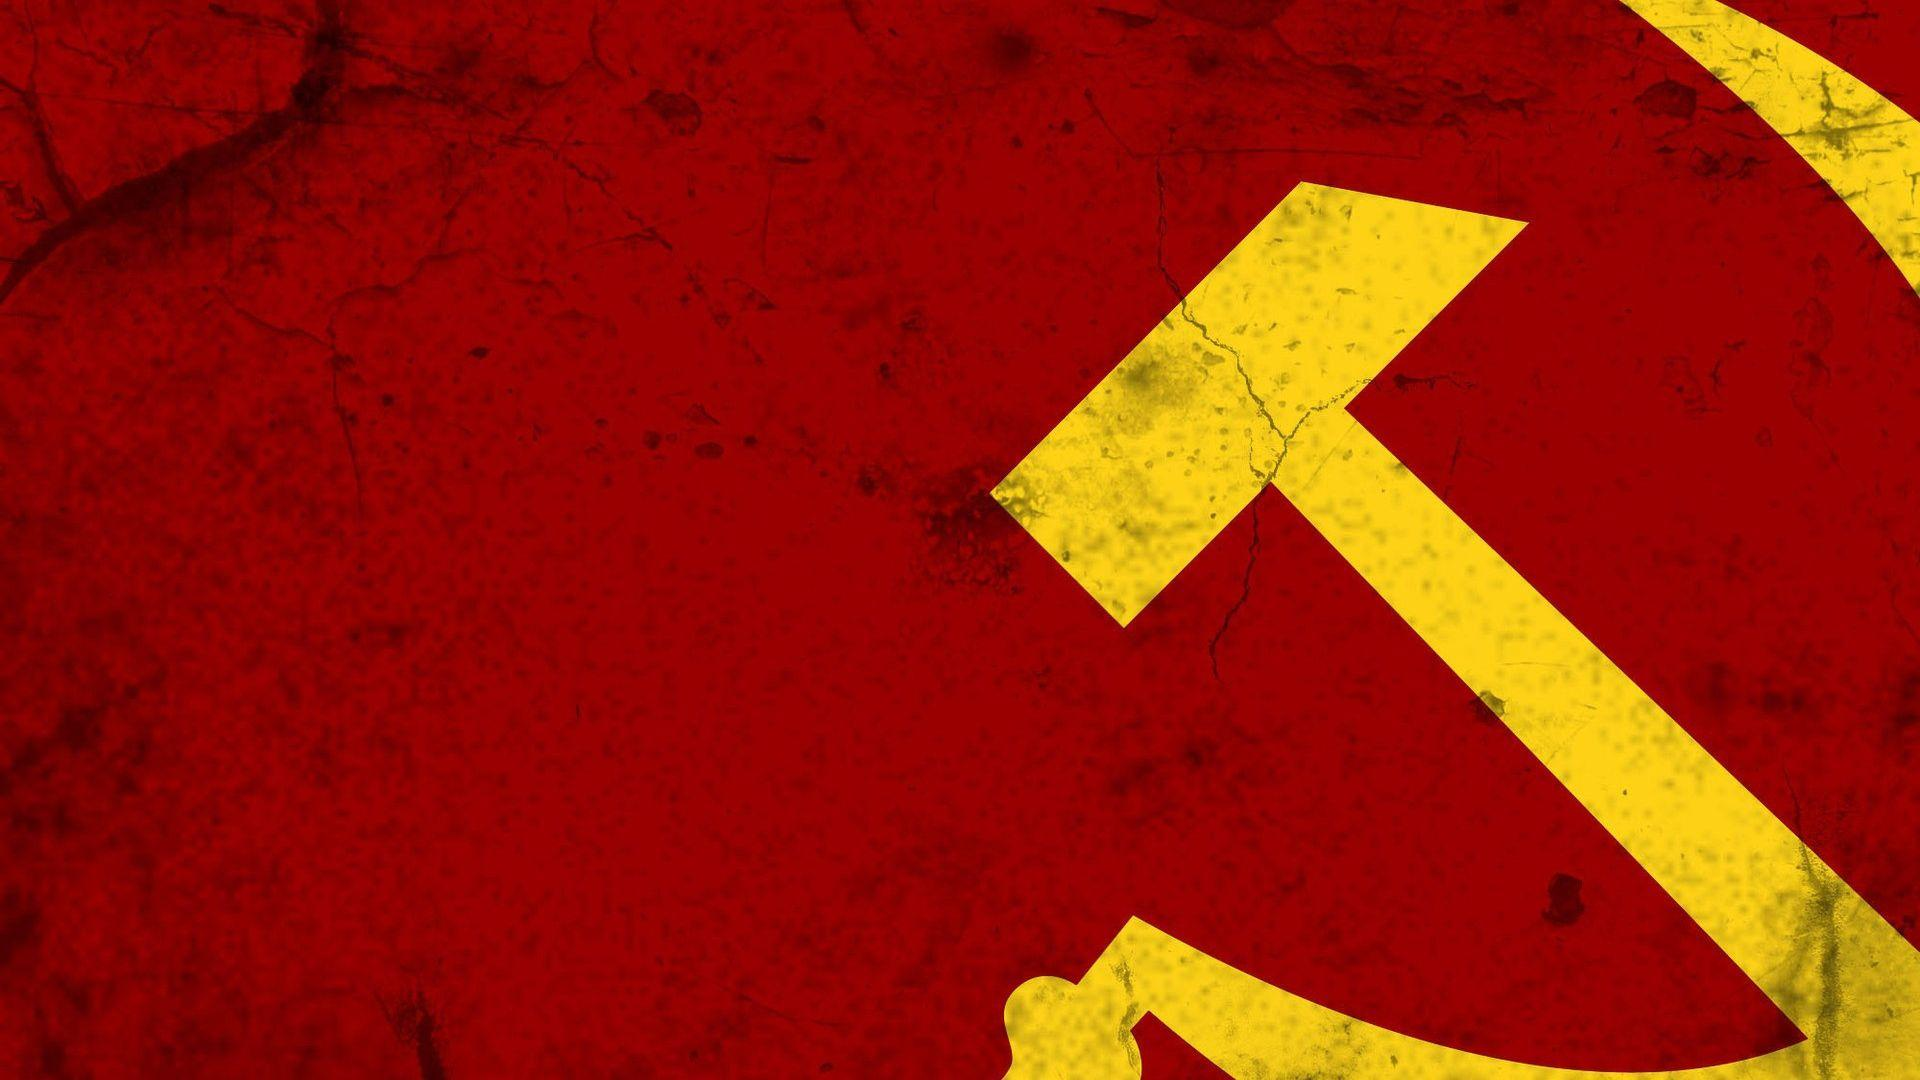 Download Wallpapers 1920x1080 hammer and sickle, soviet union